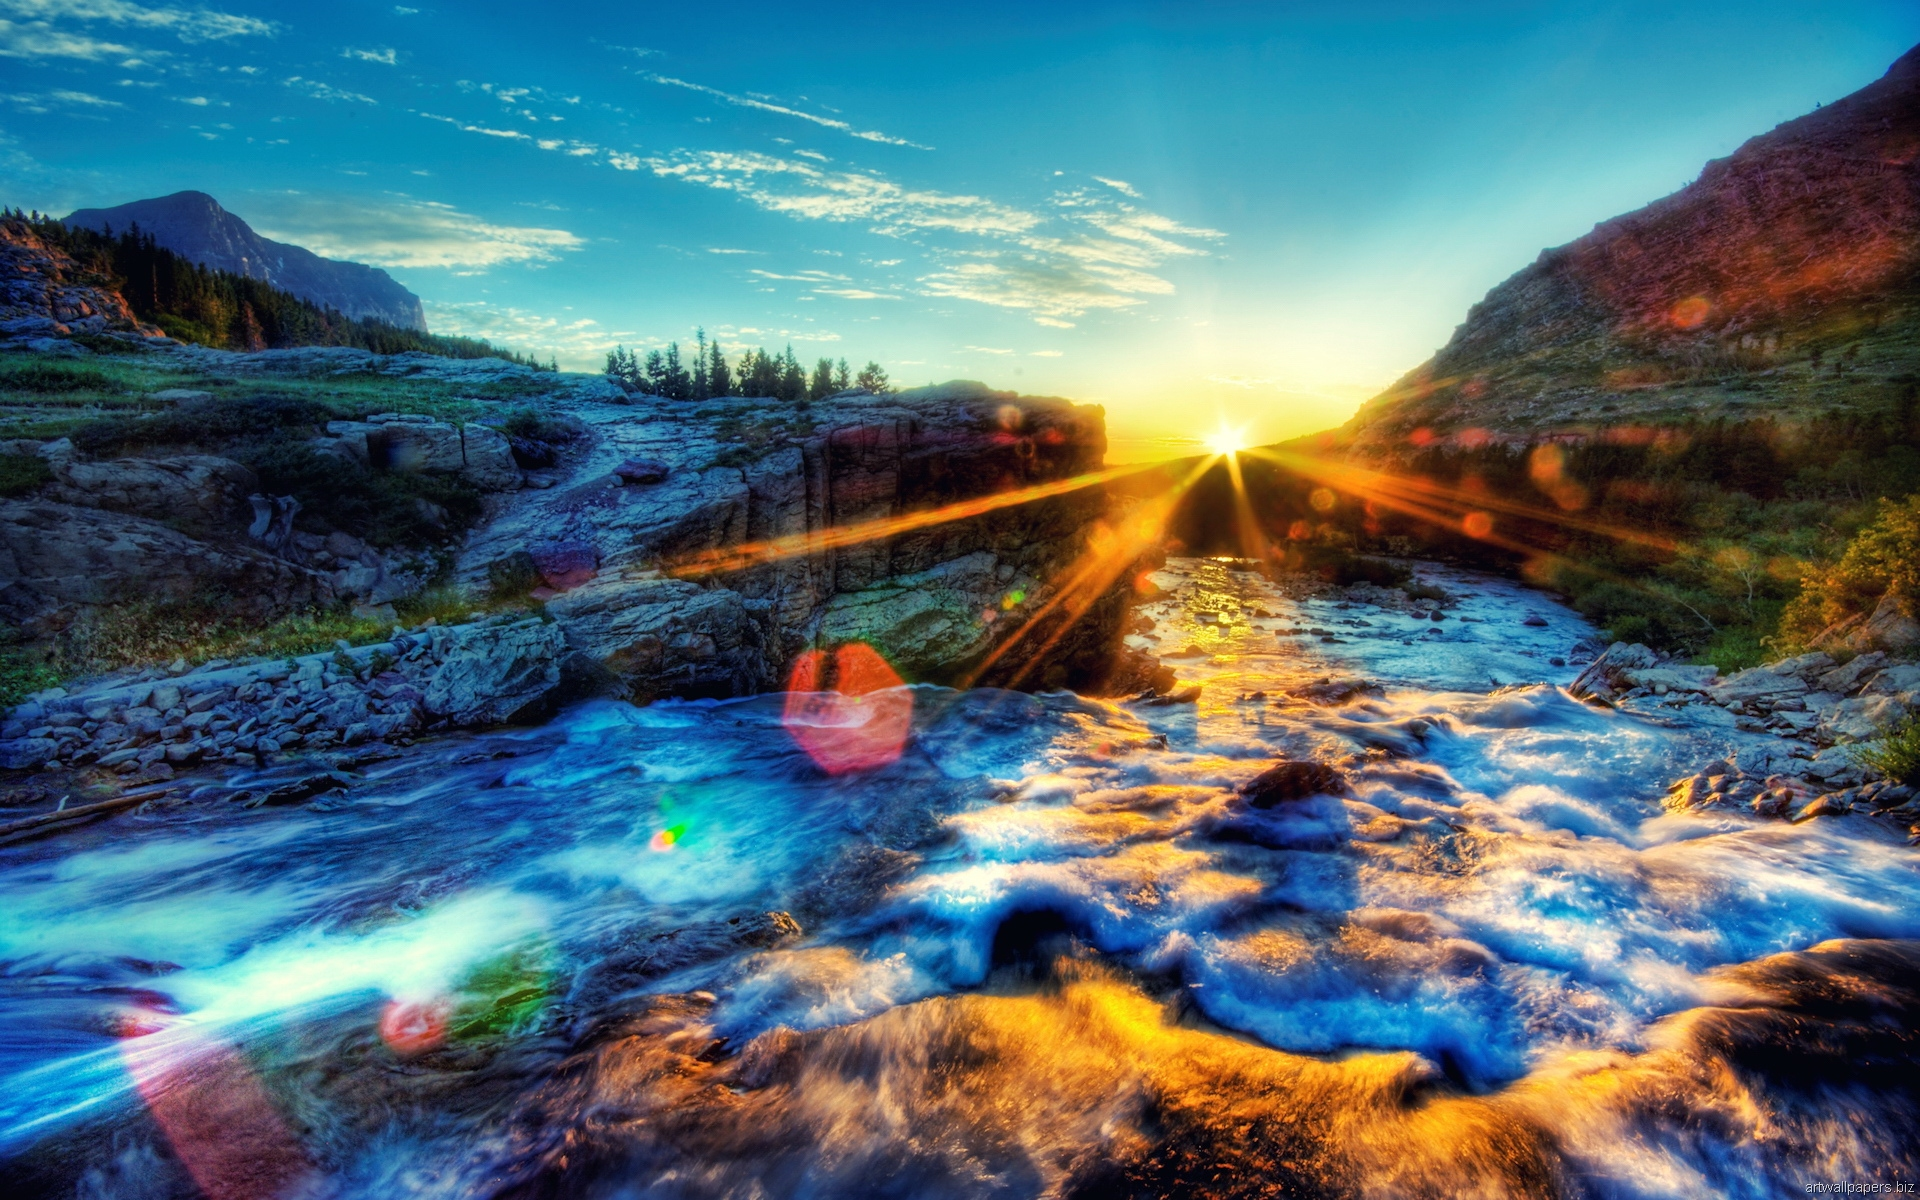 Sunshine Over a River in HDR